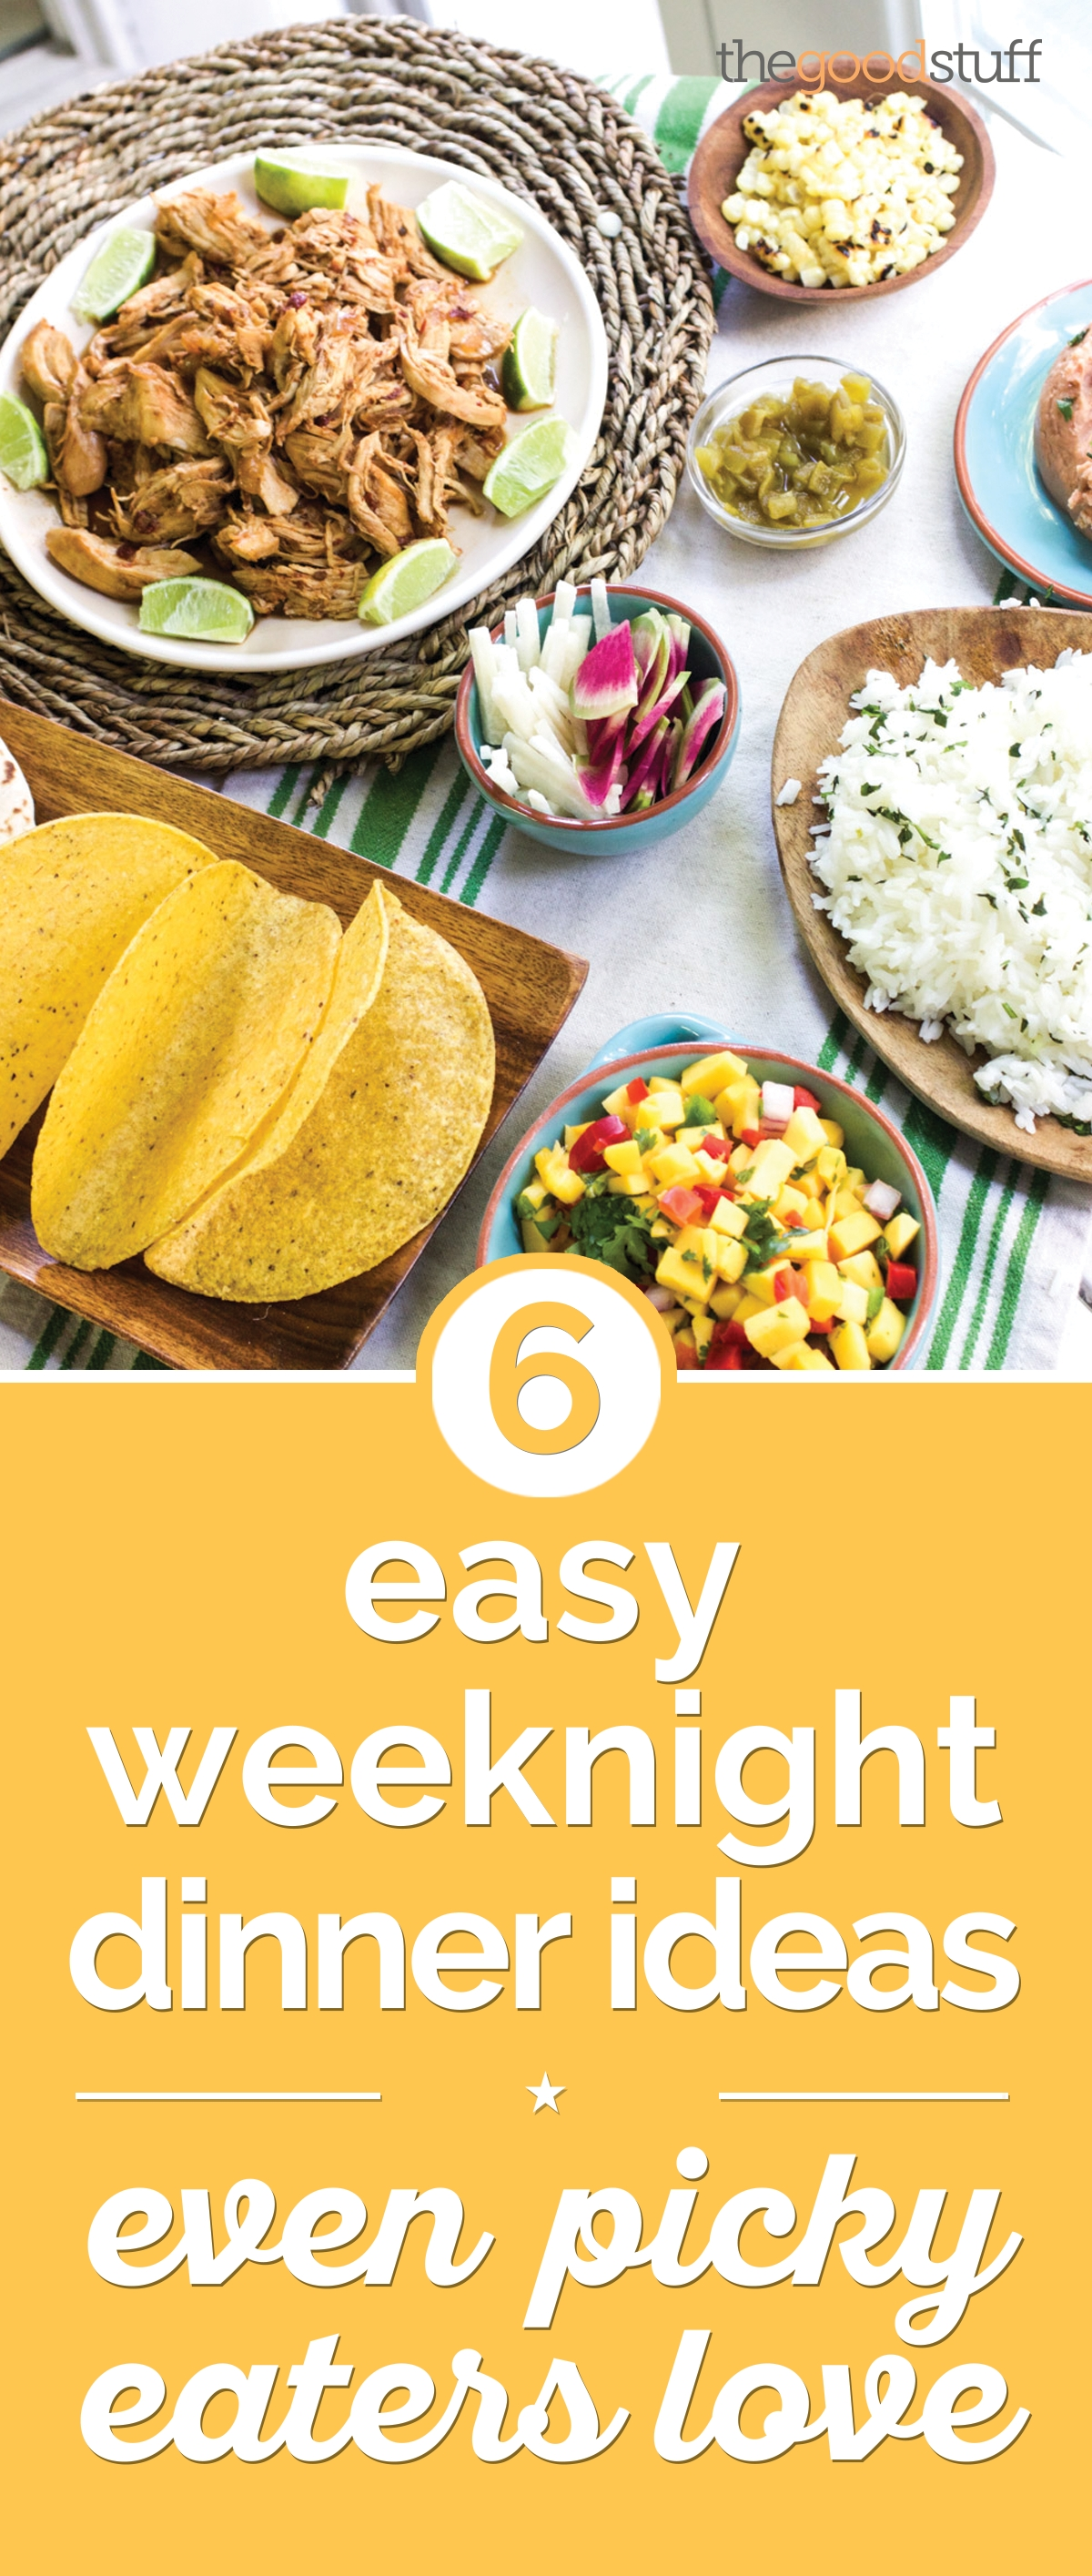 10 Fabulous Easy Dinner Ideas For Picky Eaters 6 easy weeknight dinner ideas even picky eaters love thegoodstuff 1 2021